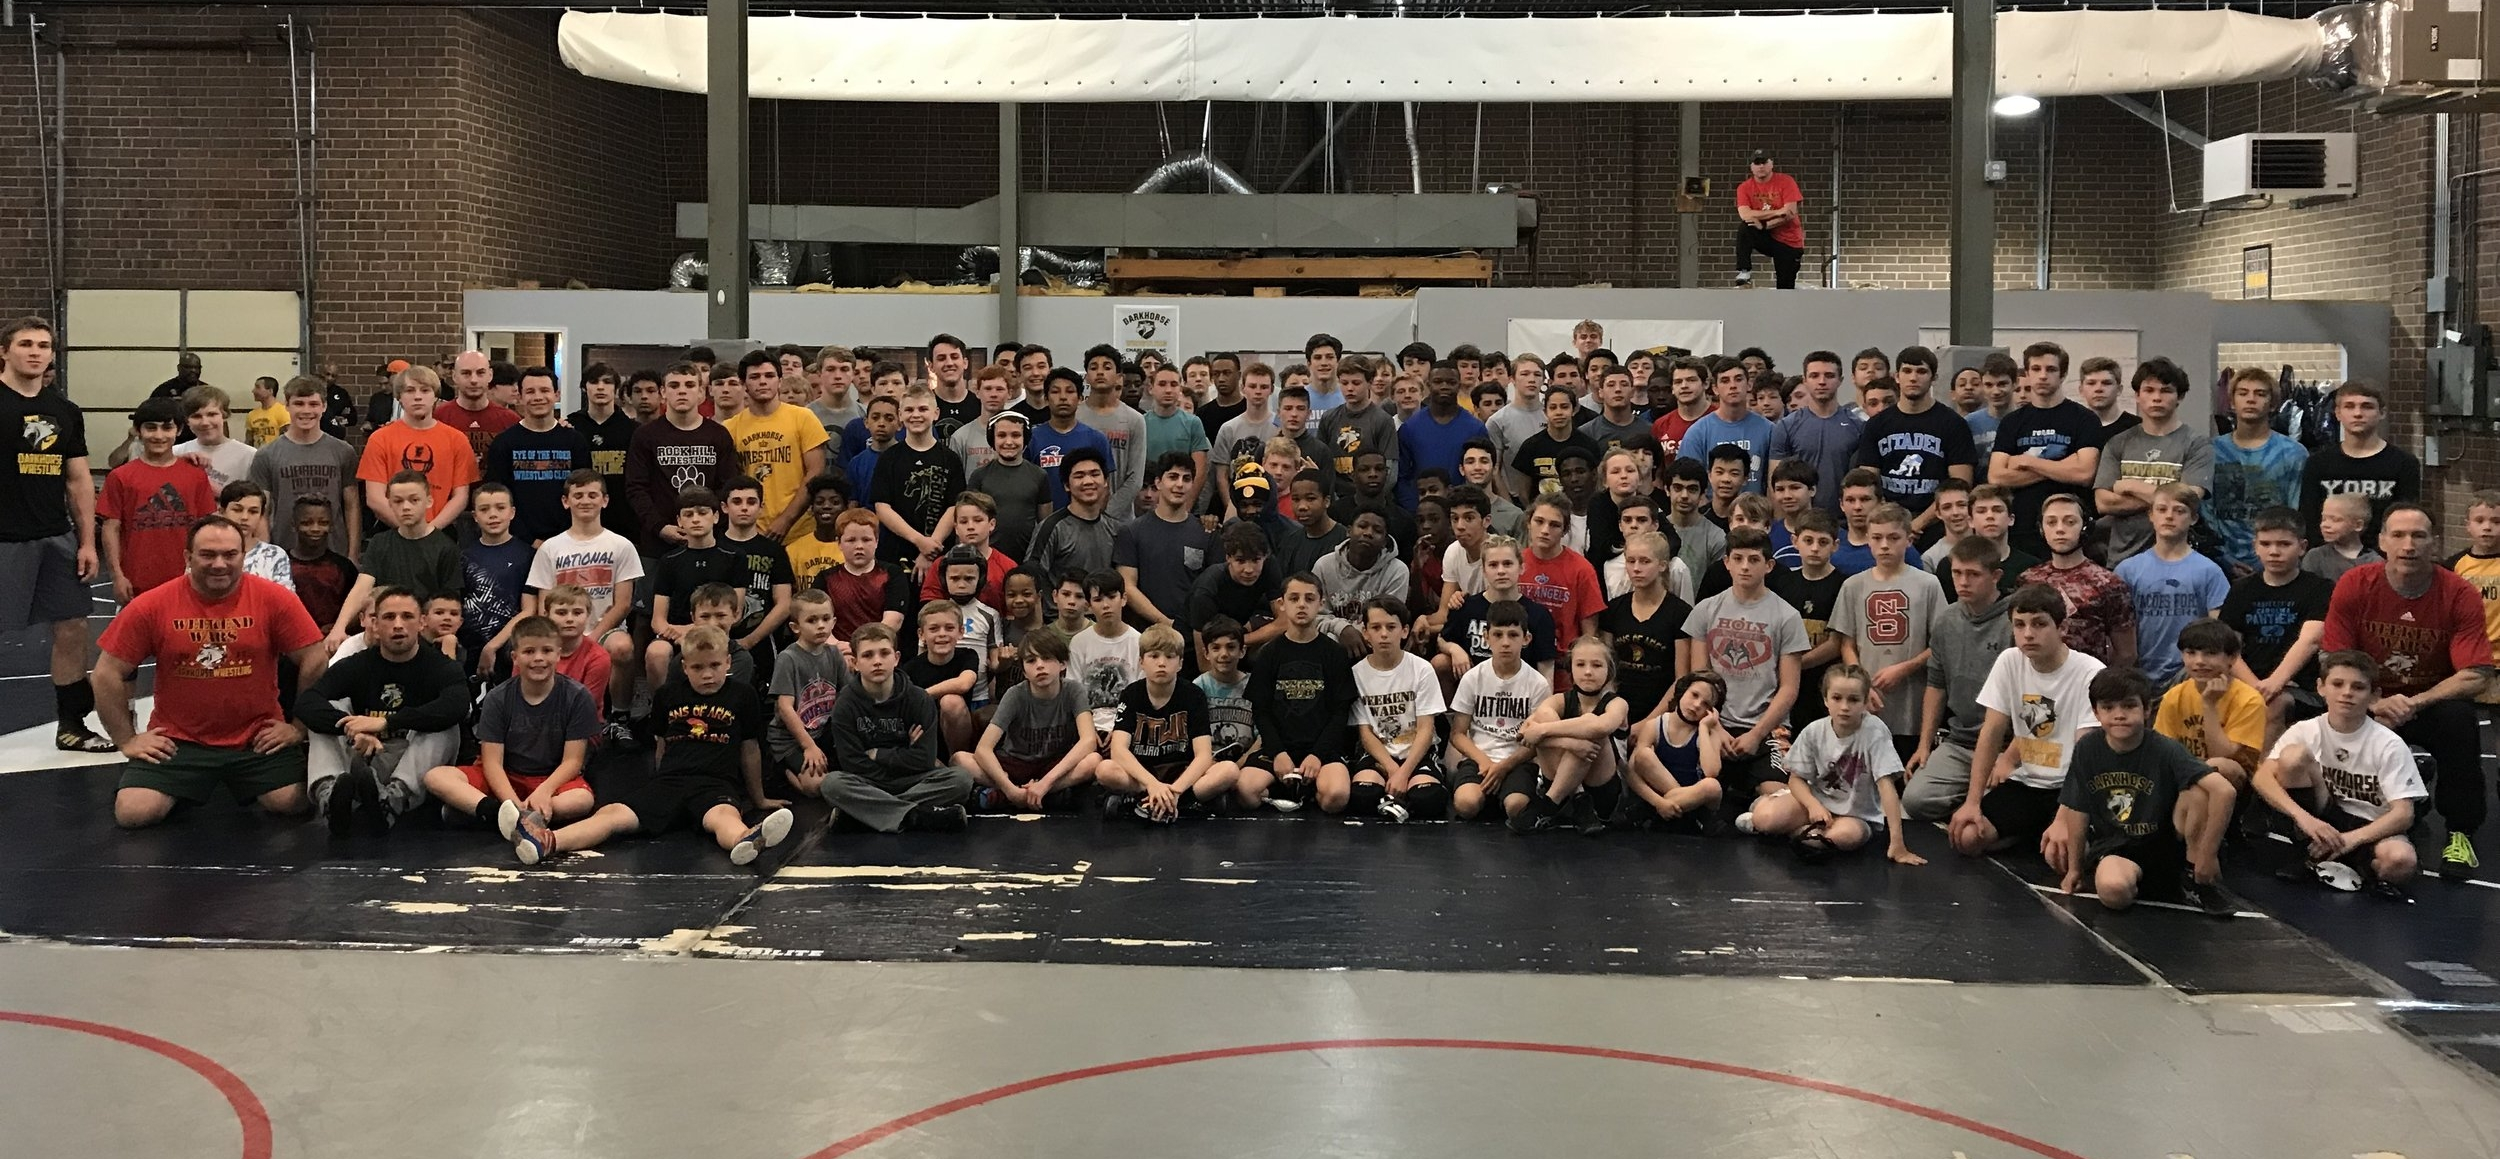 """SUMMER WRESTLING MAKES WINTER CHAMPIONS!!!  Darkhorse Wrestling's summer series, """"The Weekend Wars"""", has become the best off-season wrestling opportunity in North Carolina! This event is for wrestlers of all ages and consists of a series of informal """"live matches"""". There are no brackets, no officials, no score keepers, no trophies, NO WEIGH-INs and no coaching! Weekend Wars is ONLY about wrestling - live wrestling, with unfamiliar partners. This summer, on a combined basis, hundreds of kids have wrestled thousands of matches at the Wars - all in a supervised and fun environment. Check our EVENTS tab for 2018 Weekend Wars dates and times!!"""